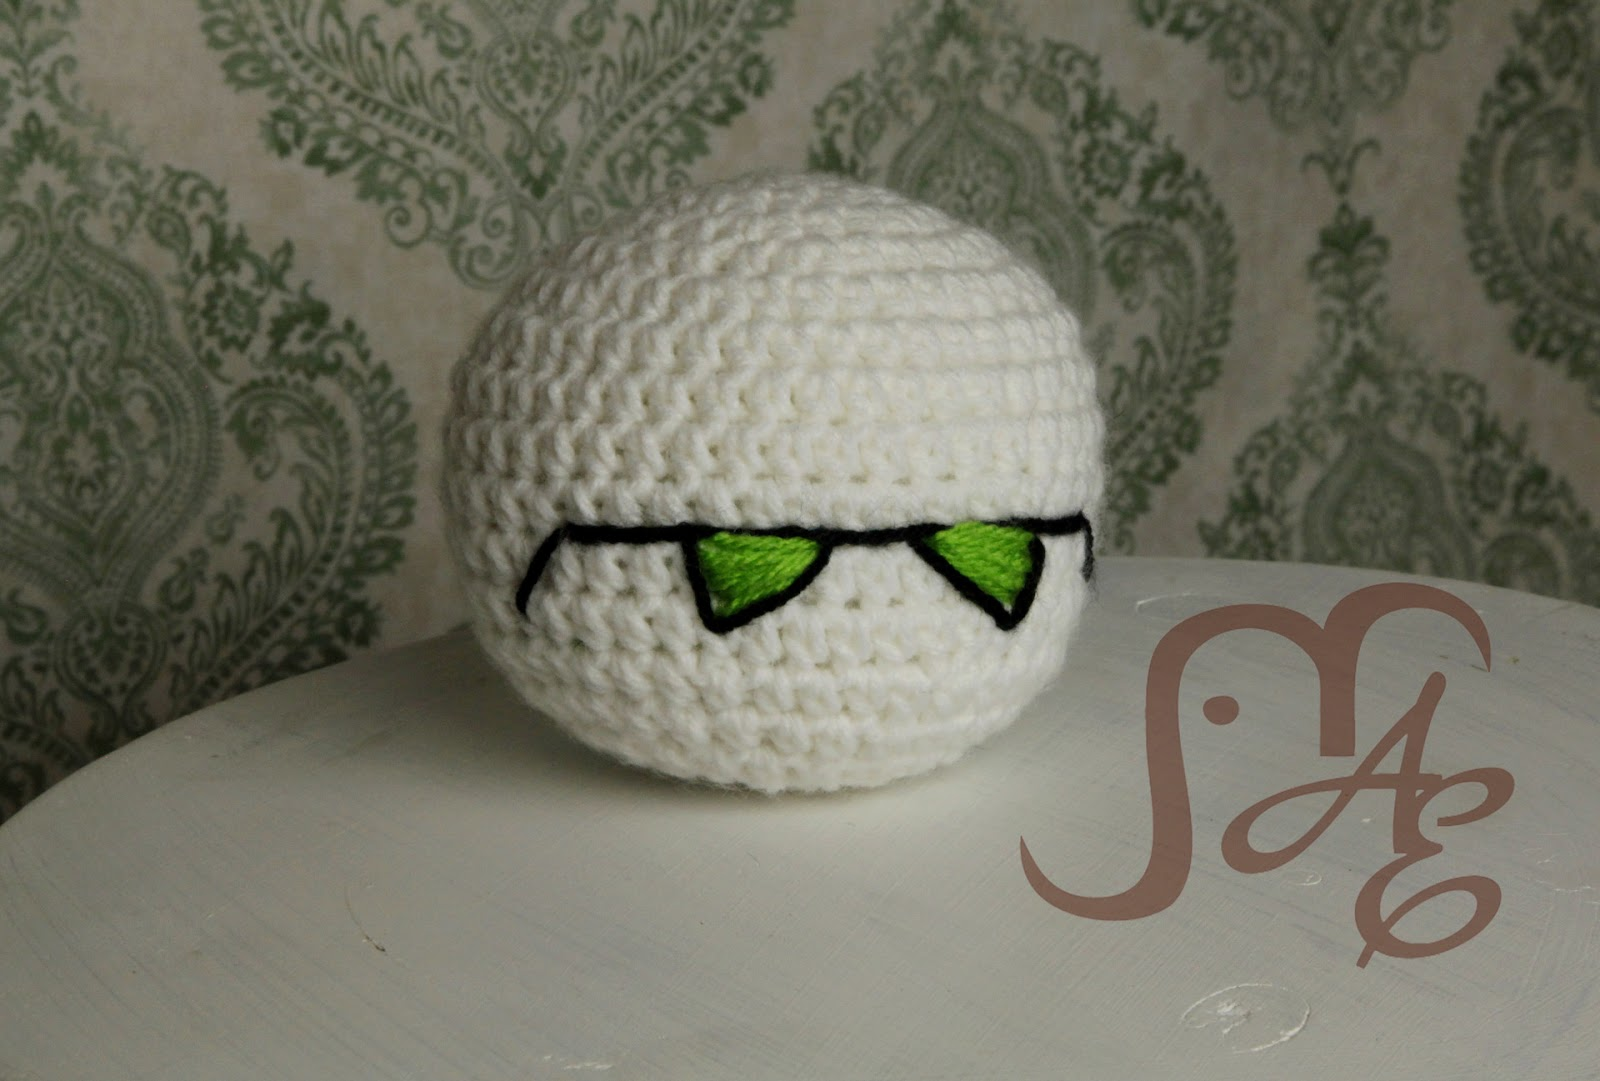 White crocheted ball with green triangles as eyes.